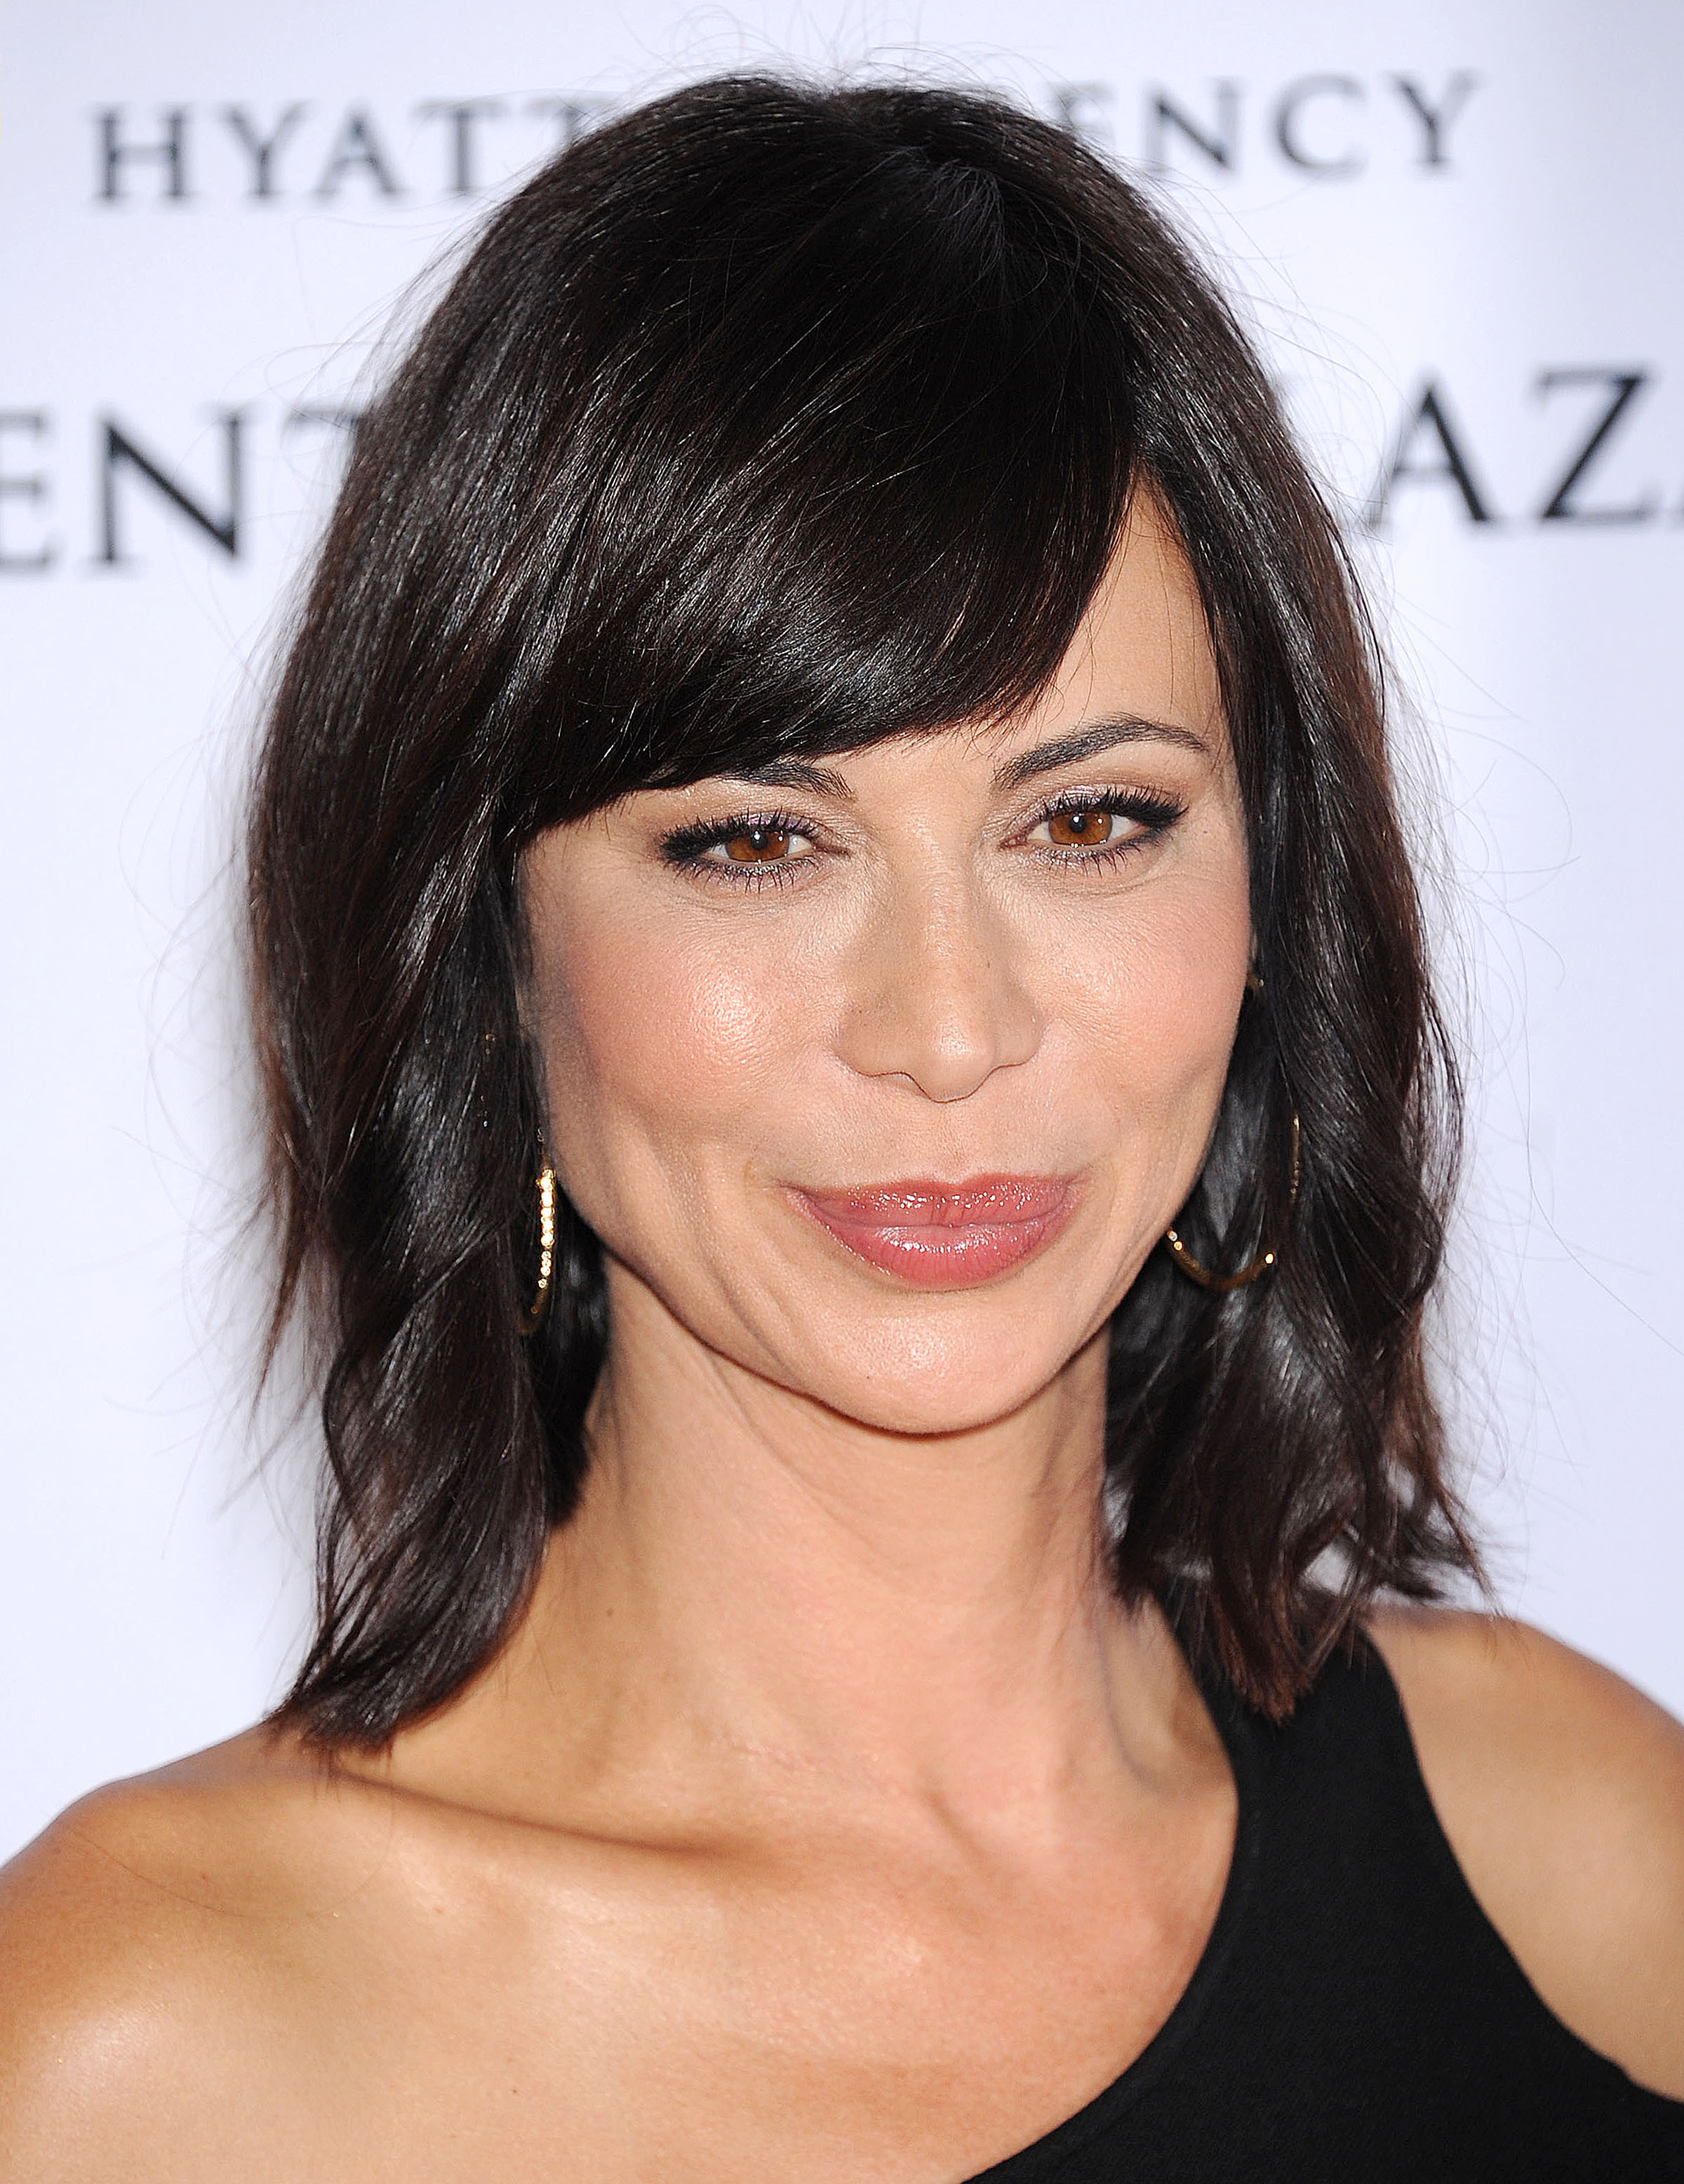 Catherine bell érotique